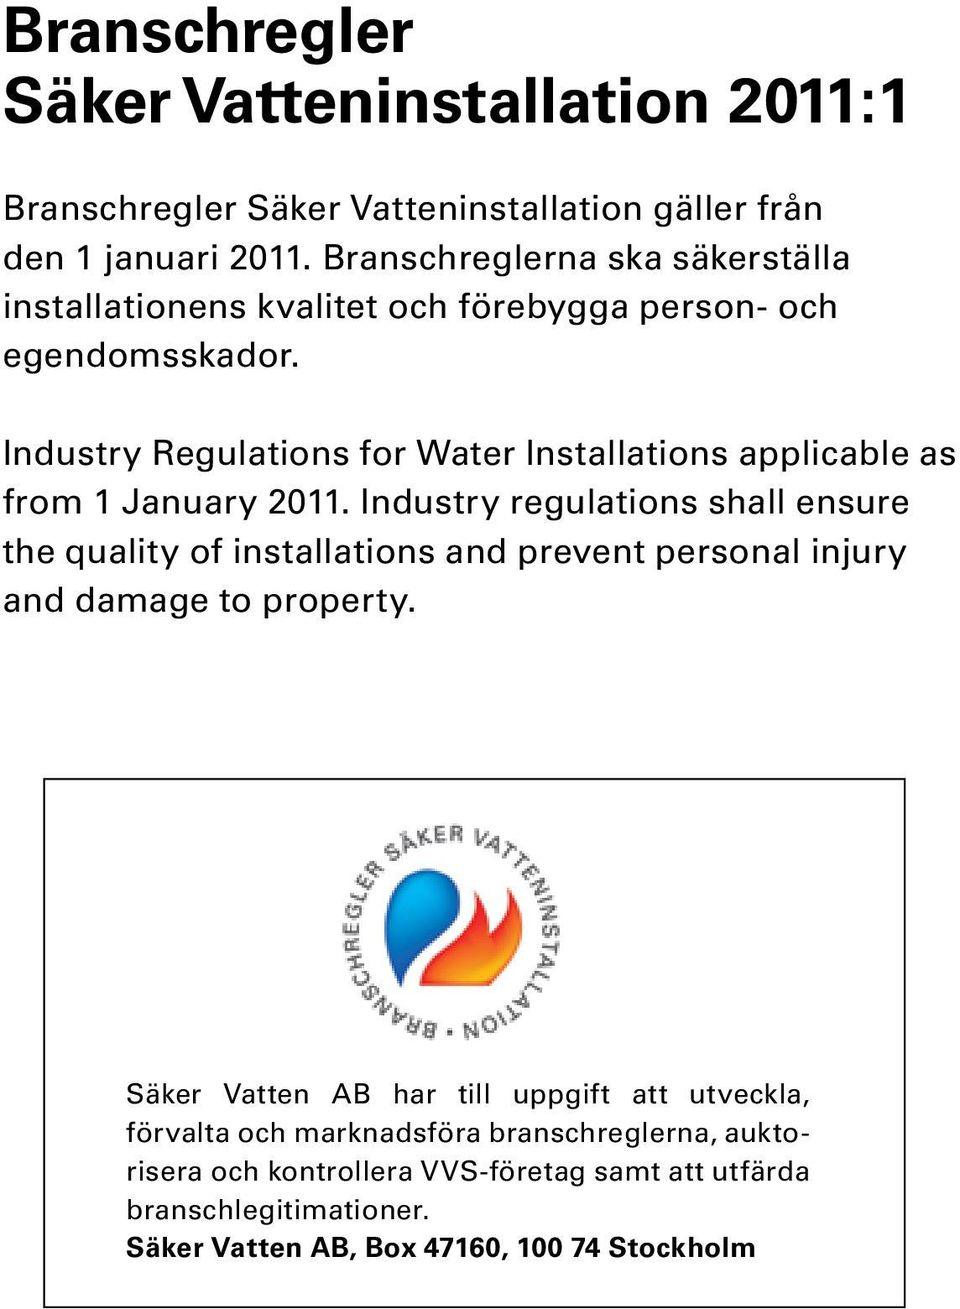 Industry Regulations for Water Installations applicable as from 1 January 2011.